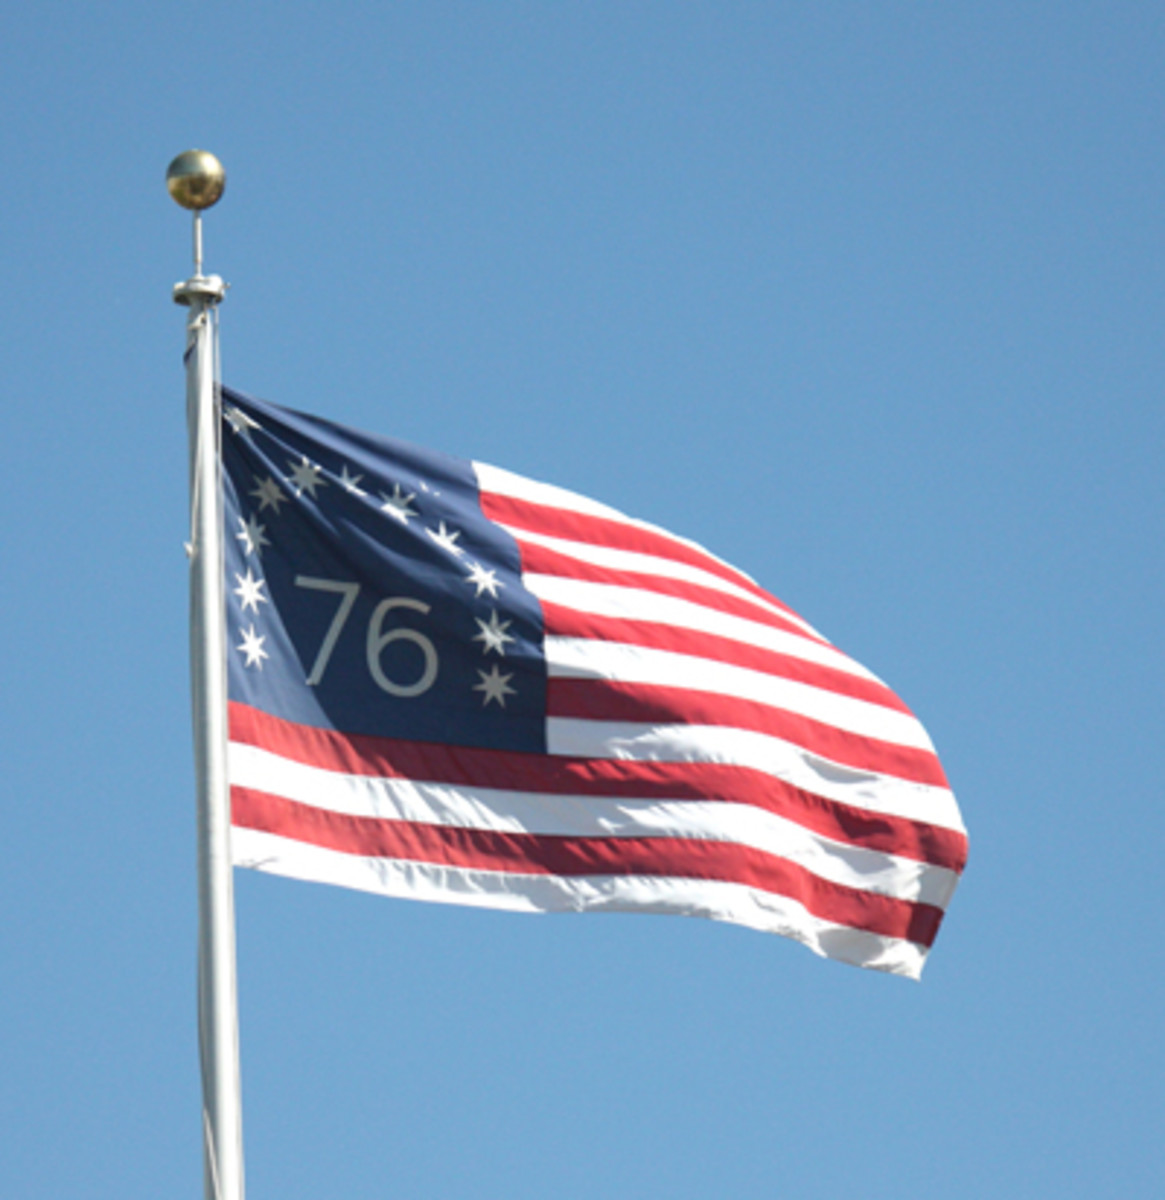 """Dad proudly flew a """"Bennington"""" style flag in front of our store during the 1970s. he Bennington version is easily identified by a large '76' in the canton, recalling the year 1776, when the Declaration of Independence was signed. Another distinctive feature of the Bennington flag is the arrangement of the 13 stripes, with white being outermost (rather than red being outermost as in the current flag). Also, its stars have seven points each (instead of the current five) and the blue canton is taller than on other flags, spanning nine instead of seven of the thirteen stripes. The example shown here was photographed flying over San Francisco City Hall."""